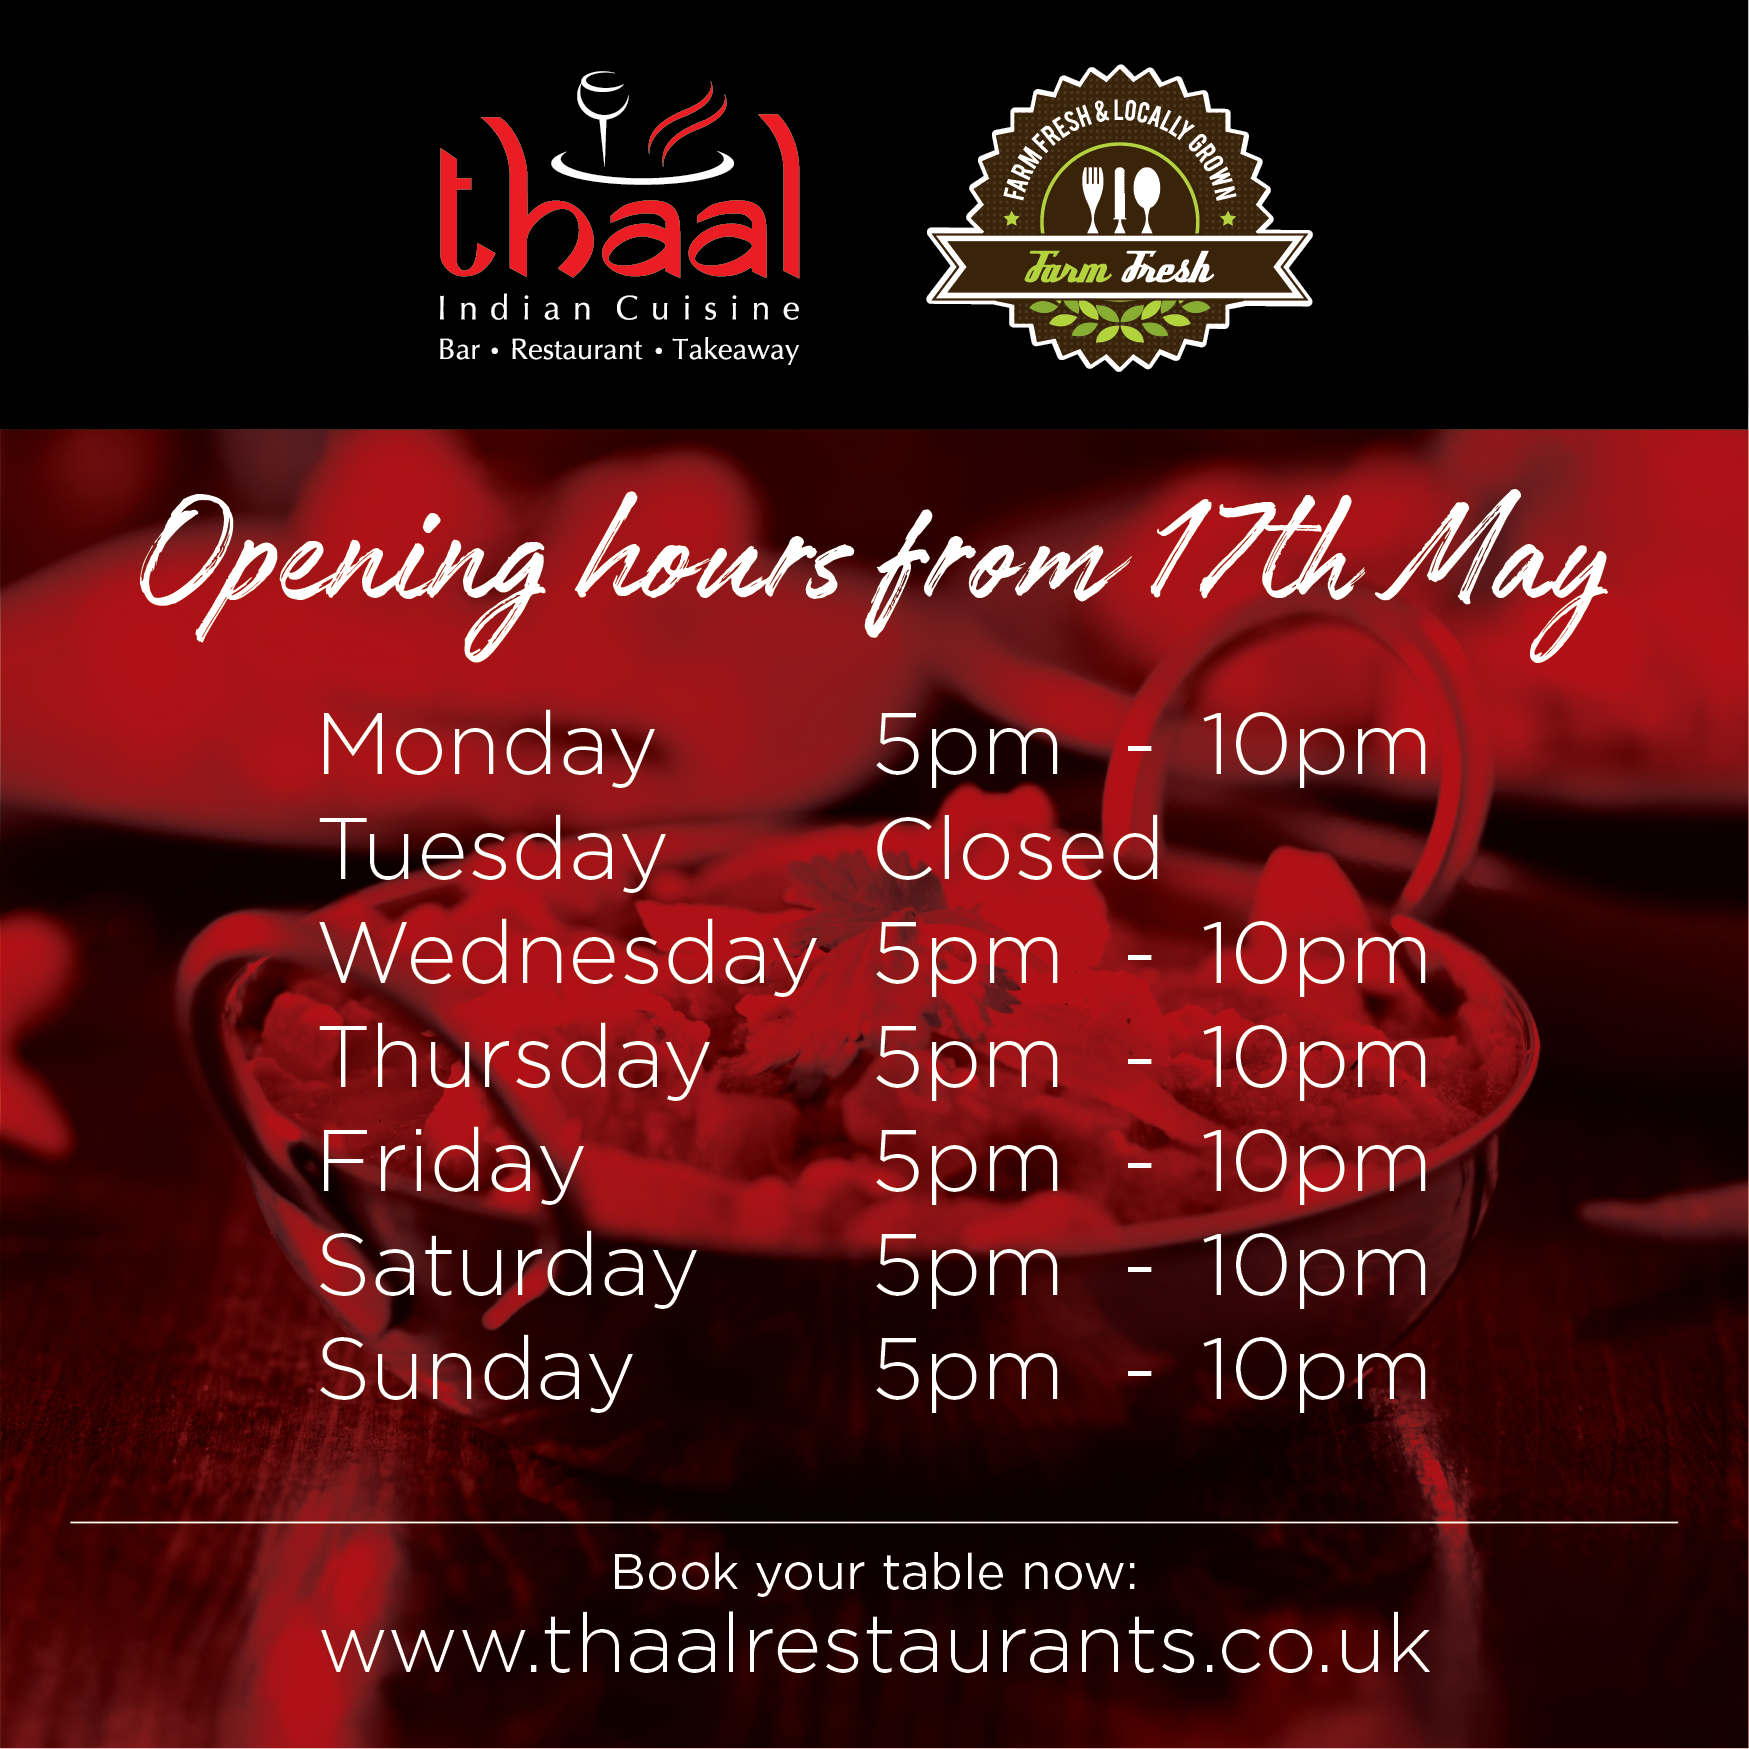 17th May Opening Hours-01